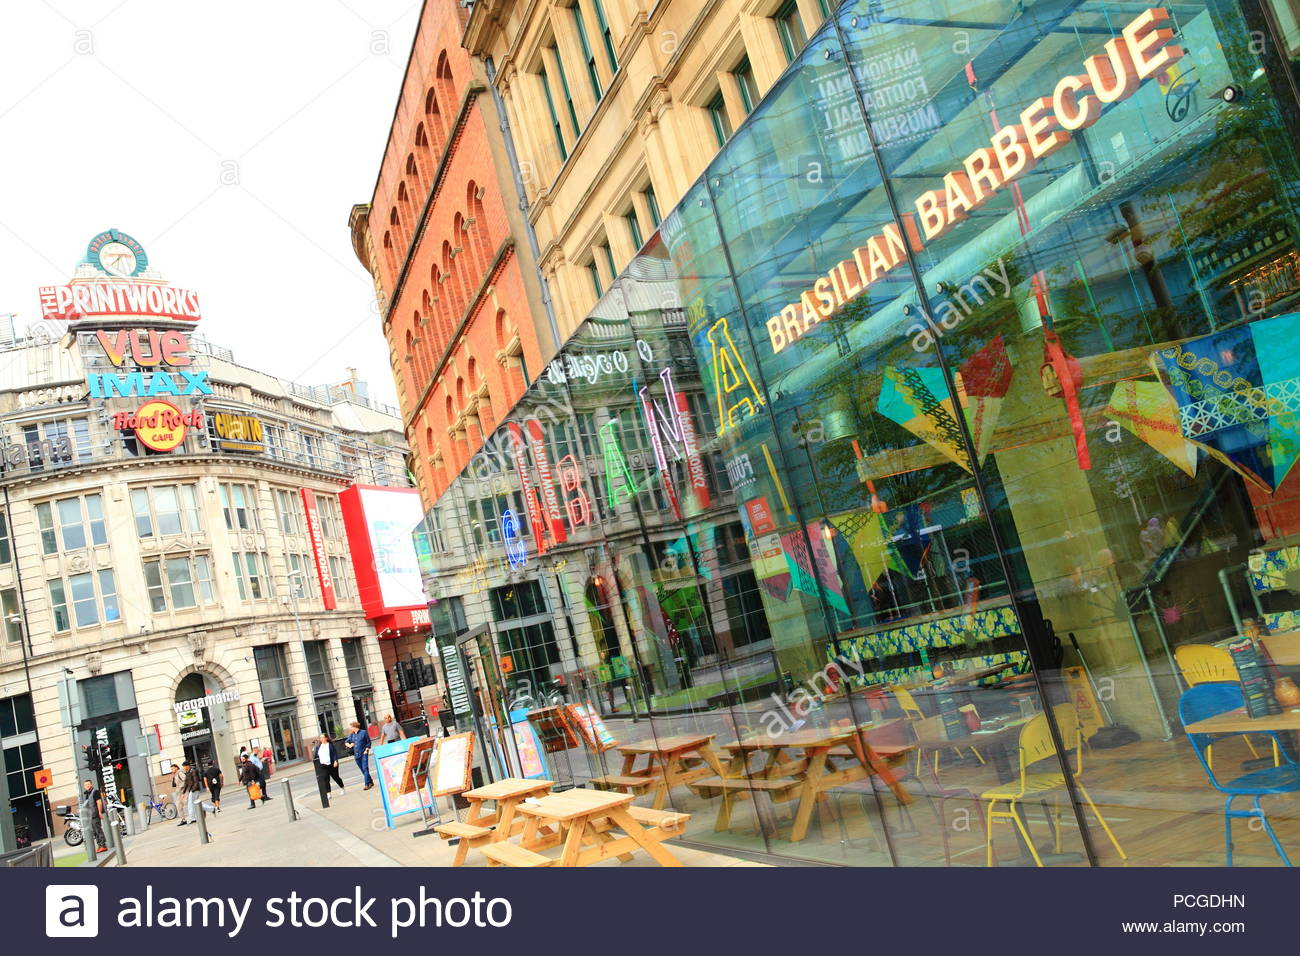 City life around the Printworks at Exchange Square Manchester UK. Summer August 2018 Evening - Stock Image